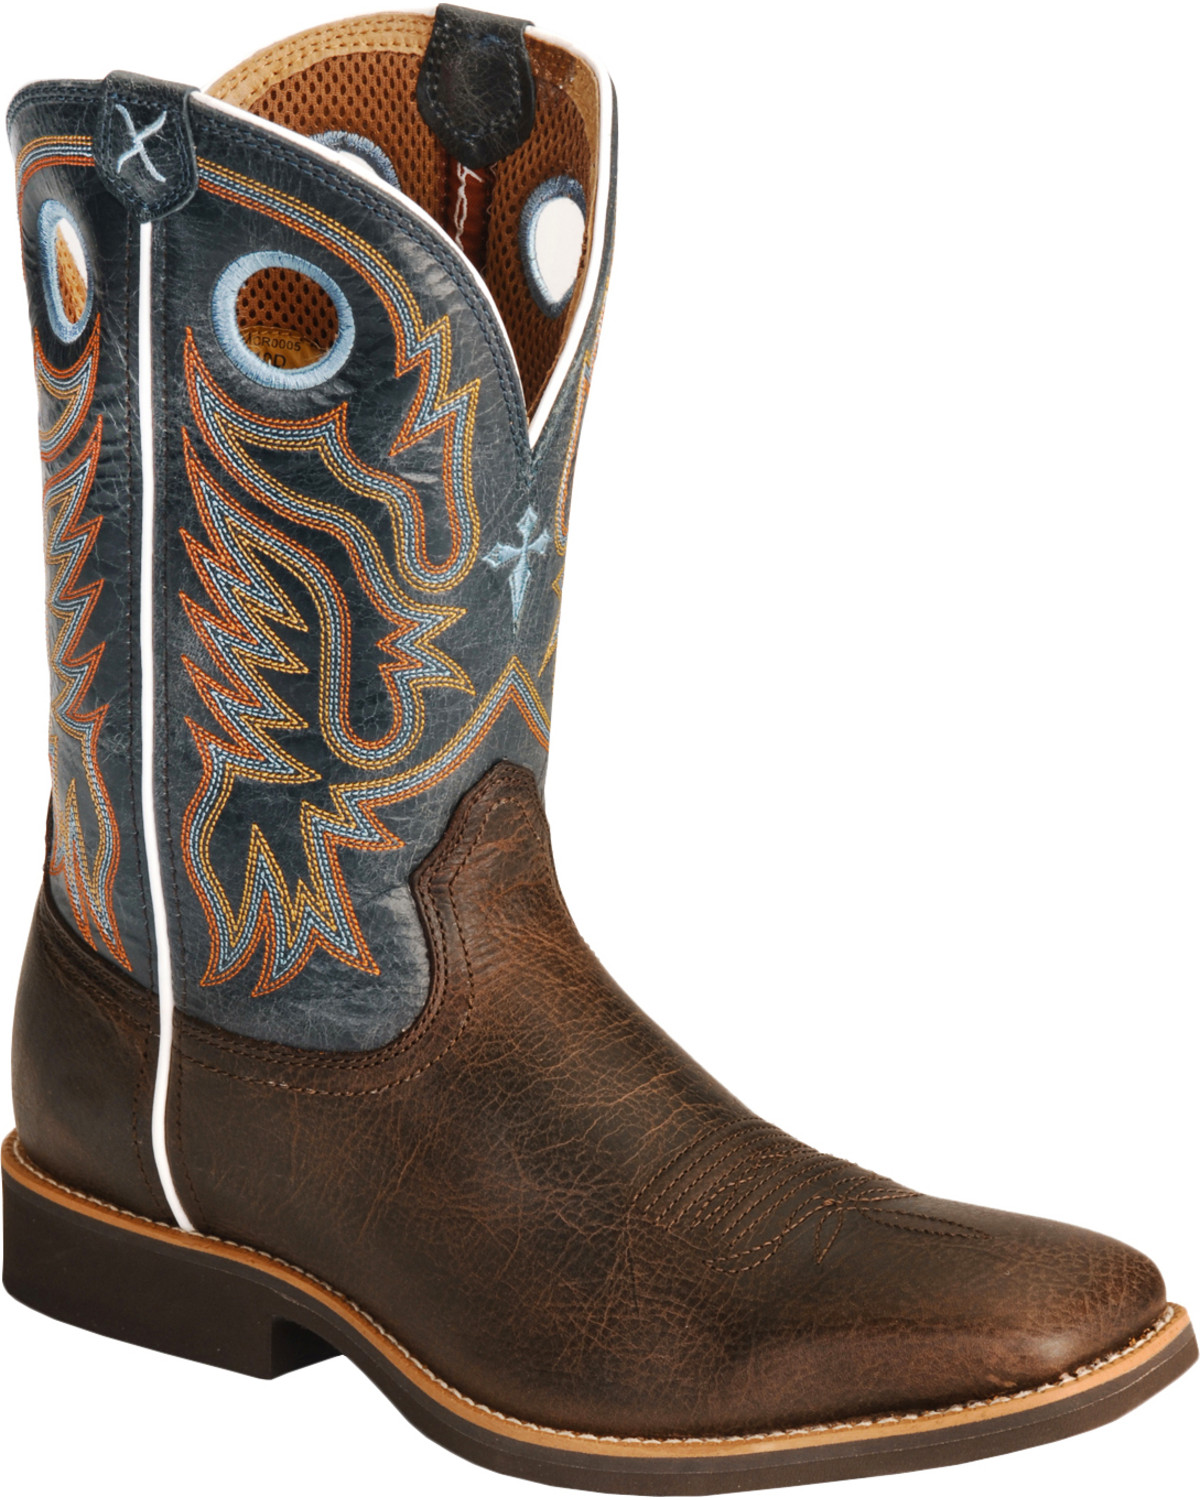 Twisted X Men's Calf Roper Western Boots